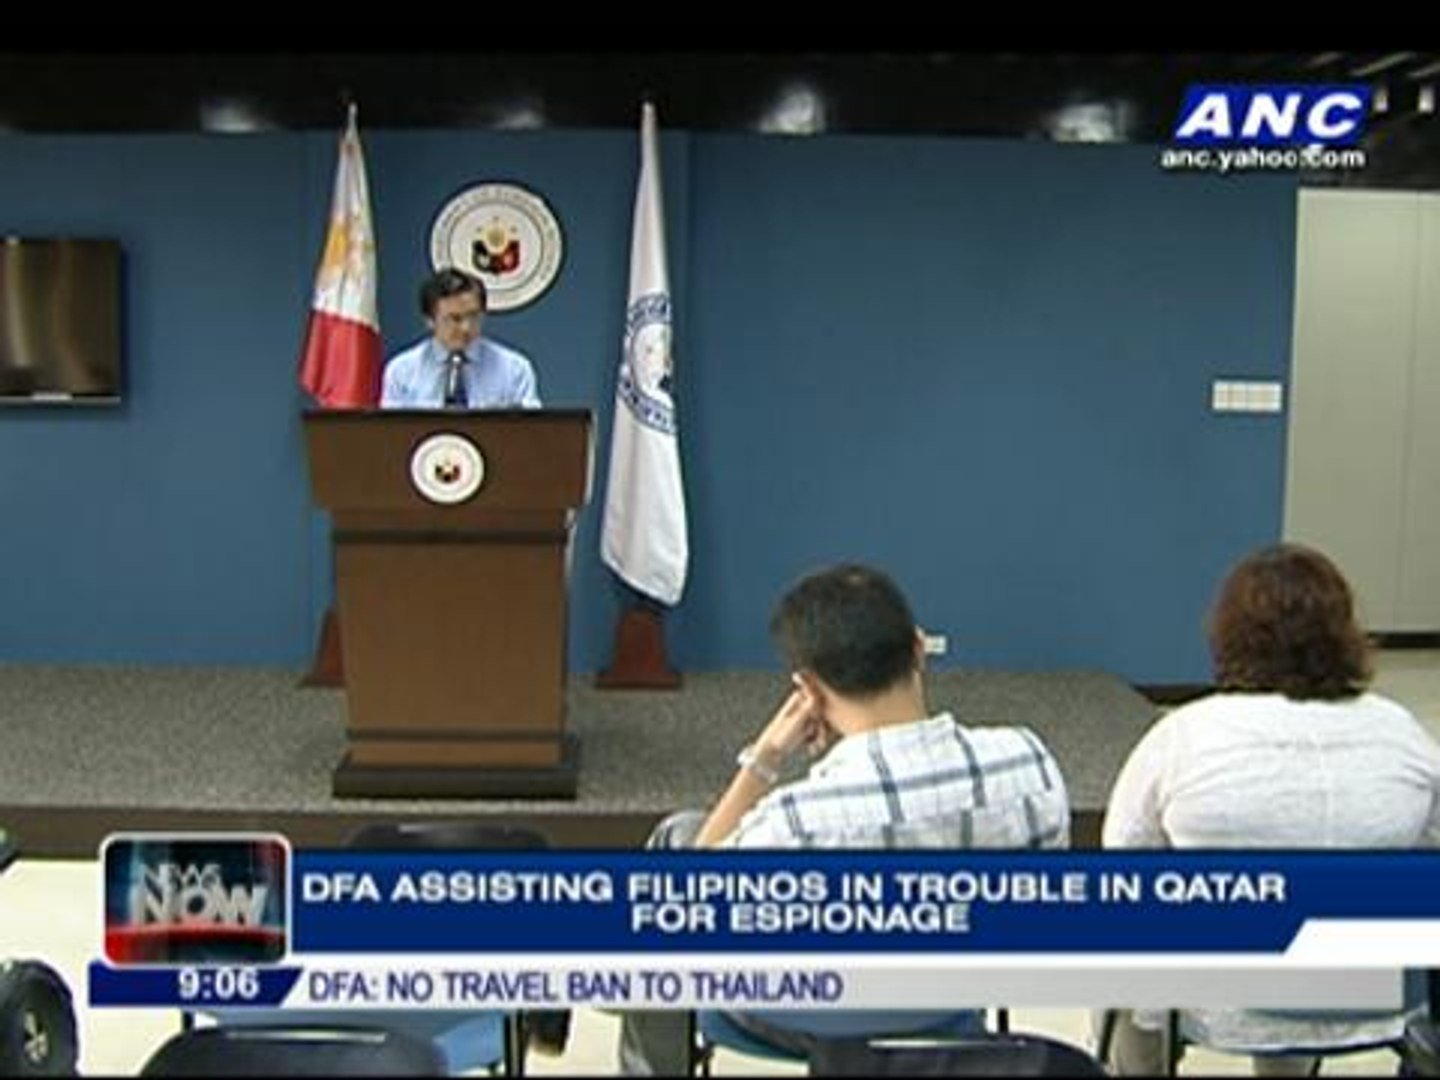 DFA assisting Pinoys in trouble in Qatar